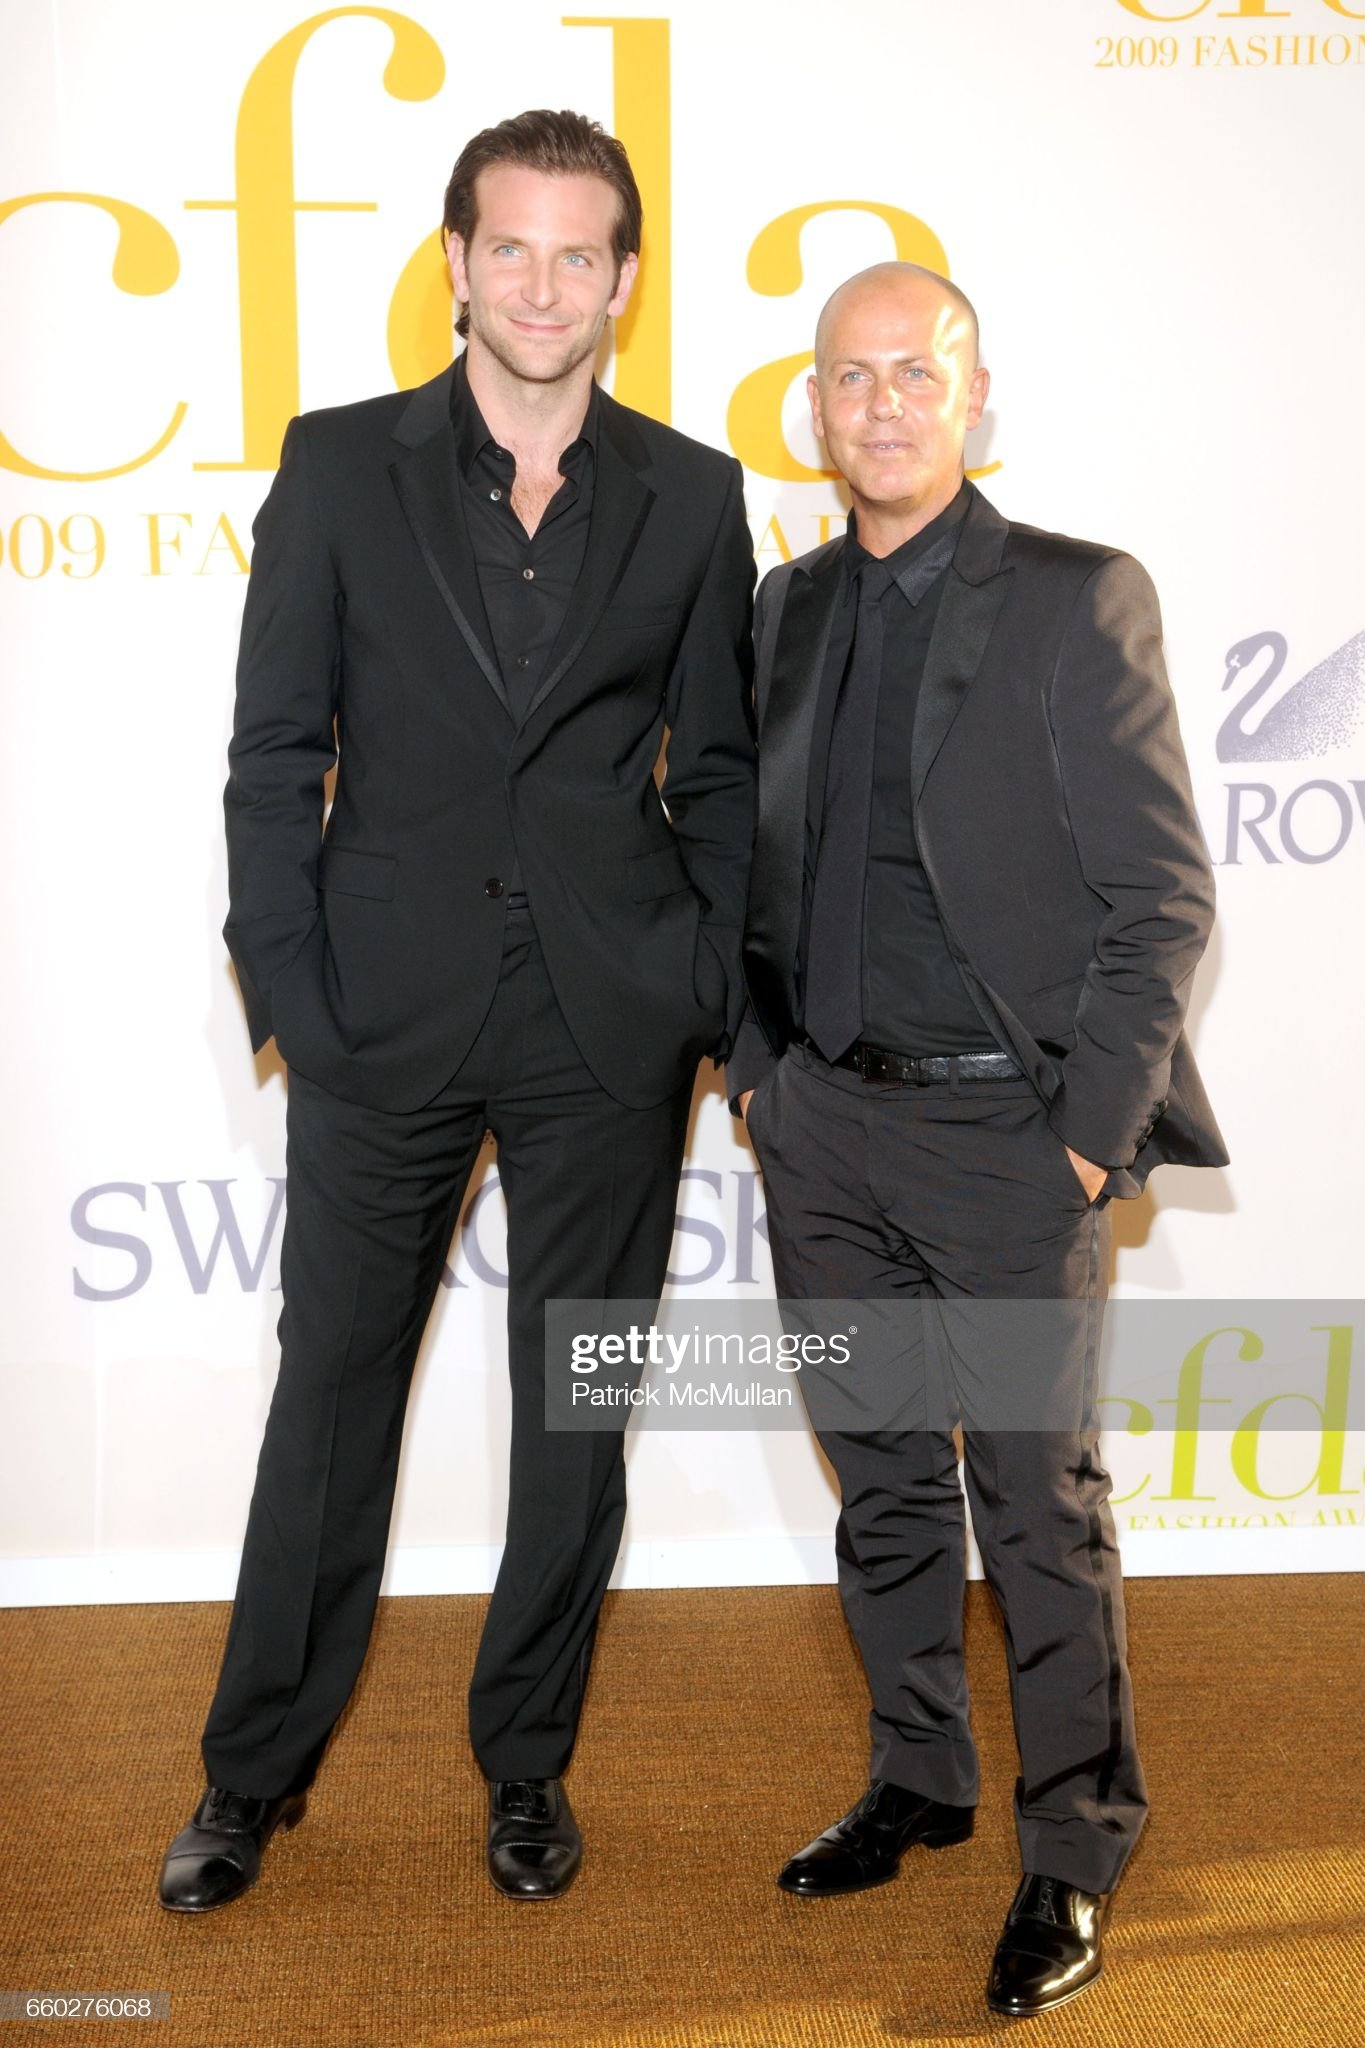 ¿Cuánto mide Italo Zucchelli? - Altura - Real height Bradley-cooper-and-italo-zucchelli-attend-cfda-awards-2009-arrivals-picture-id660276068?s=2048x2048